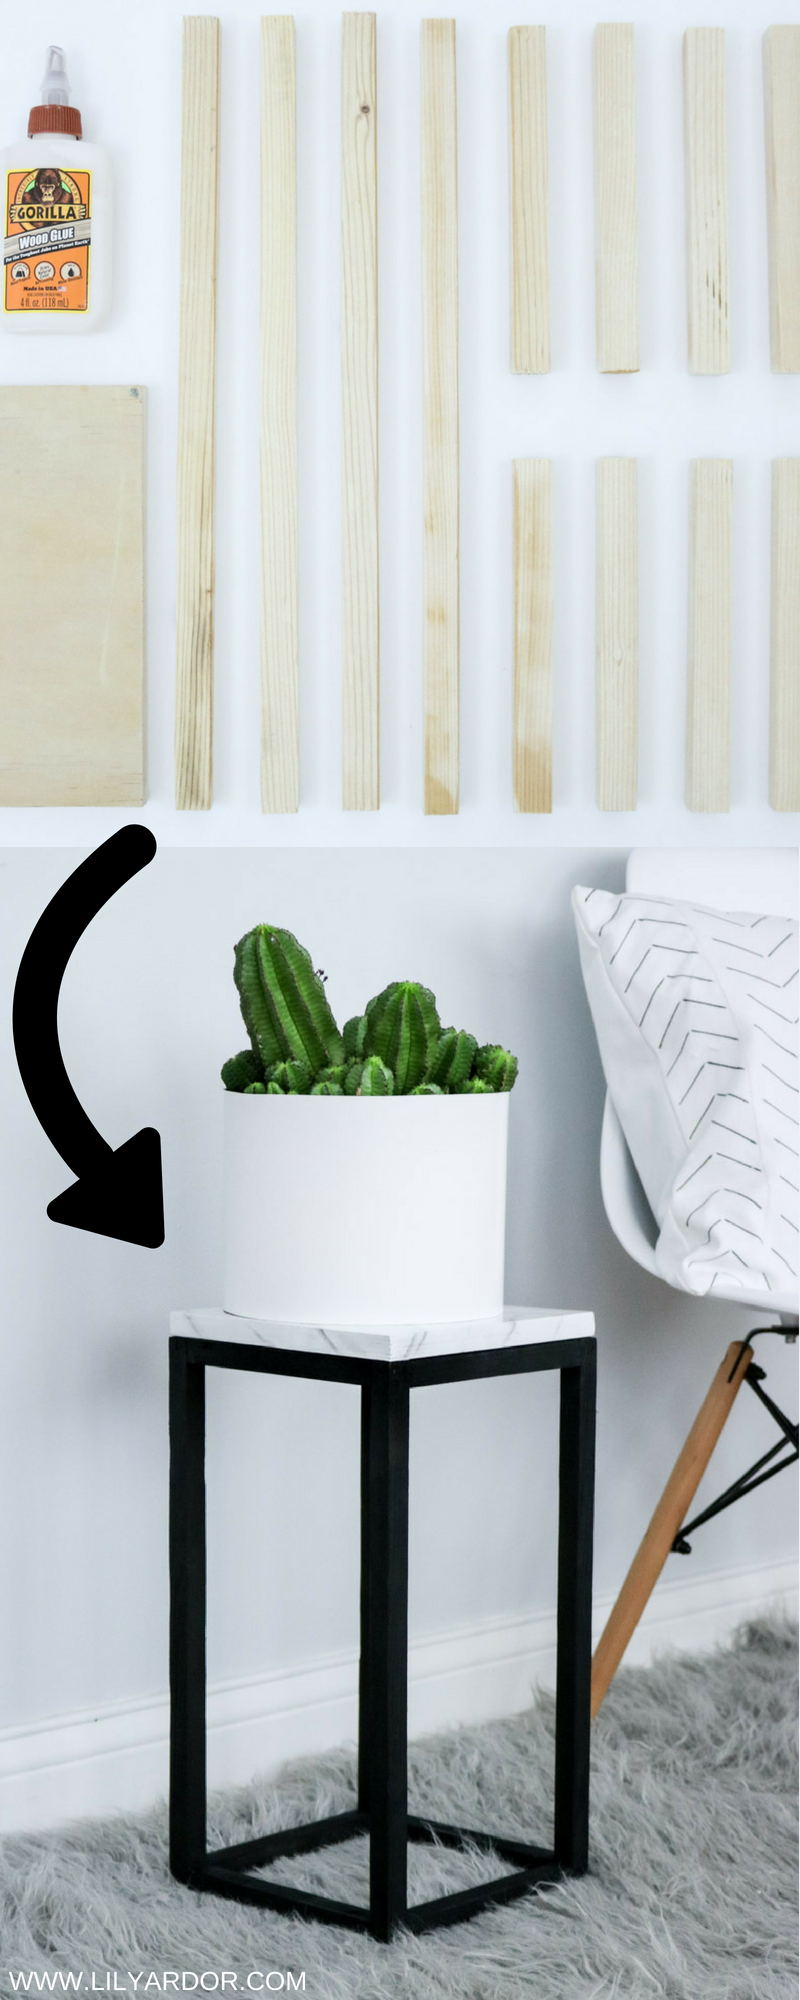 Diy Plant Stand Easy Faux Marble Effect Diy Plant Stand Plant Stand Diy Plants